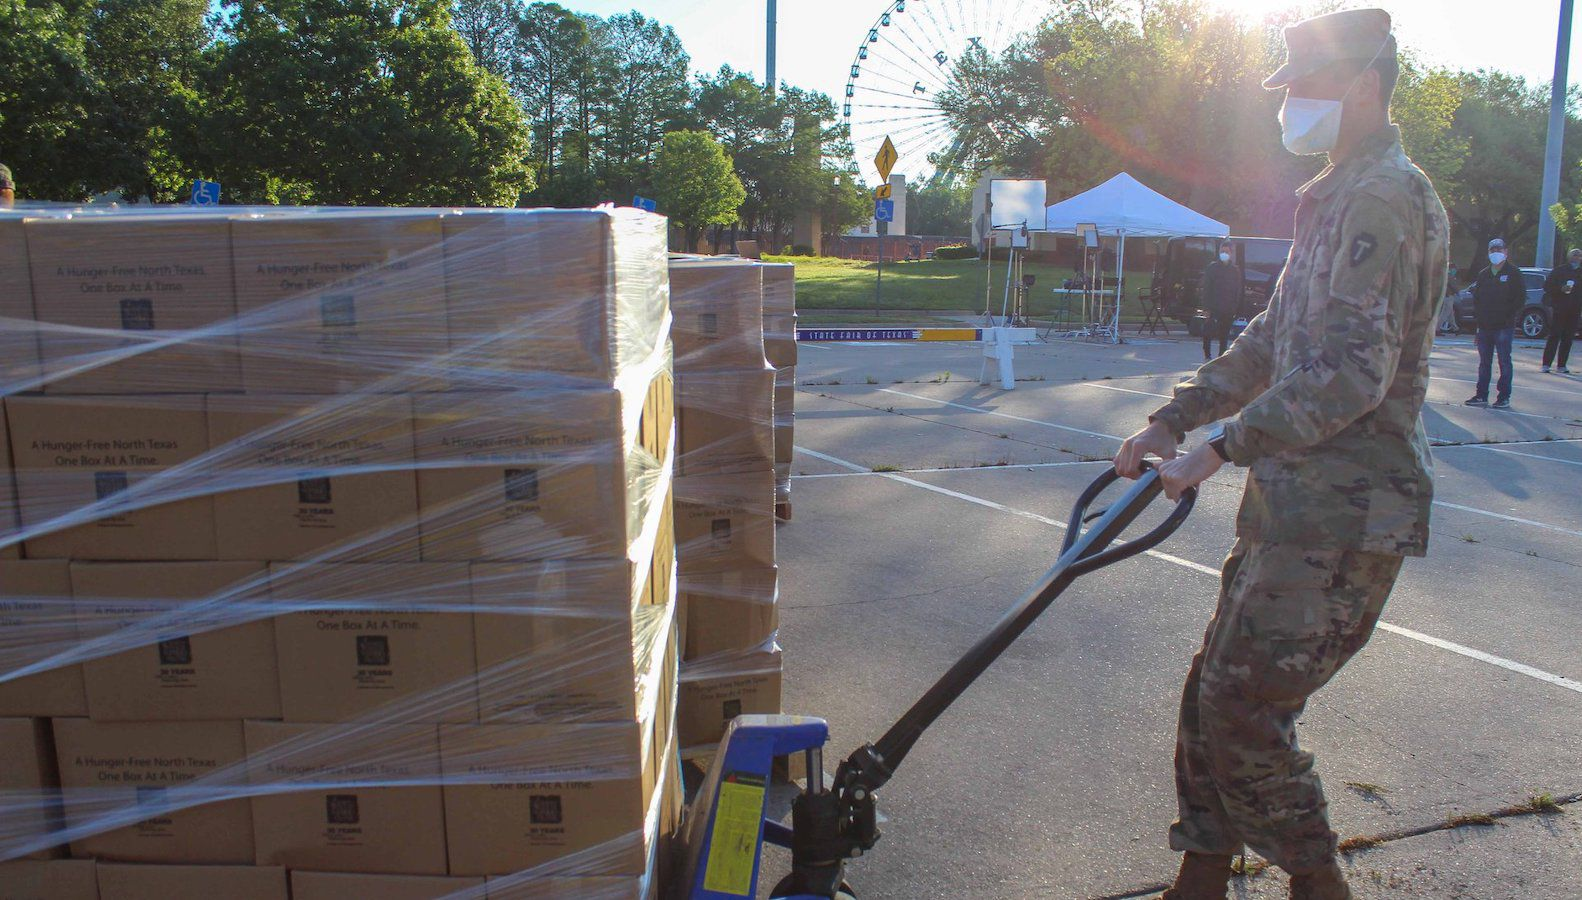 Since the start of the coronavirus pandemic, North Texas Food Bank has doubled the amount of food it distributes. According to recent research done by Feeding America, the need in our community will only continue to rise.